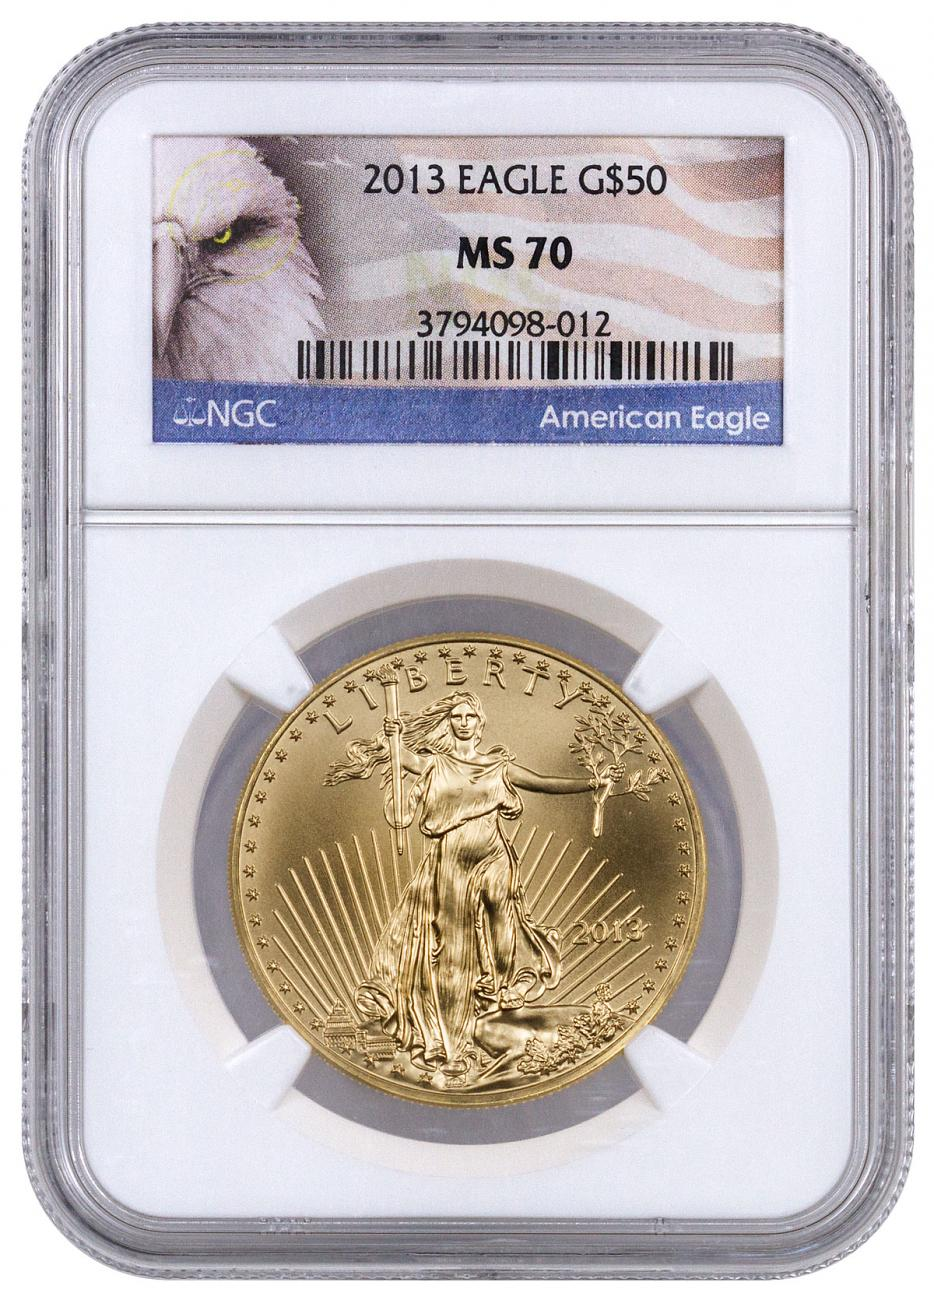 2013 1 oz Gold American Eagle $50 NGC MS70 (Exclusive American Eagle Label)